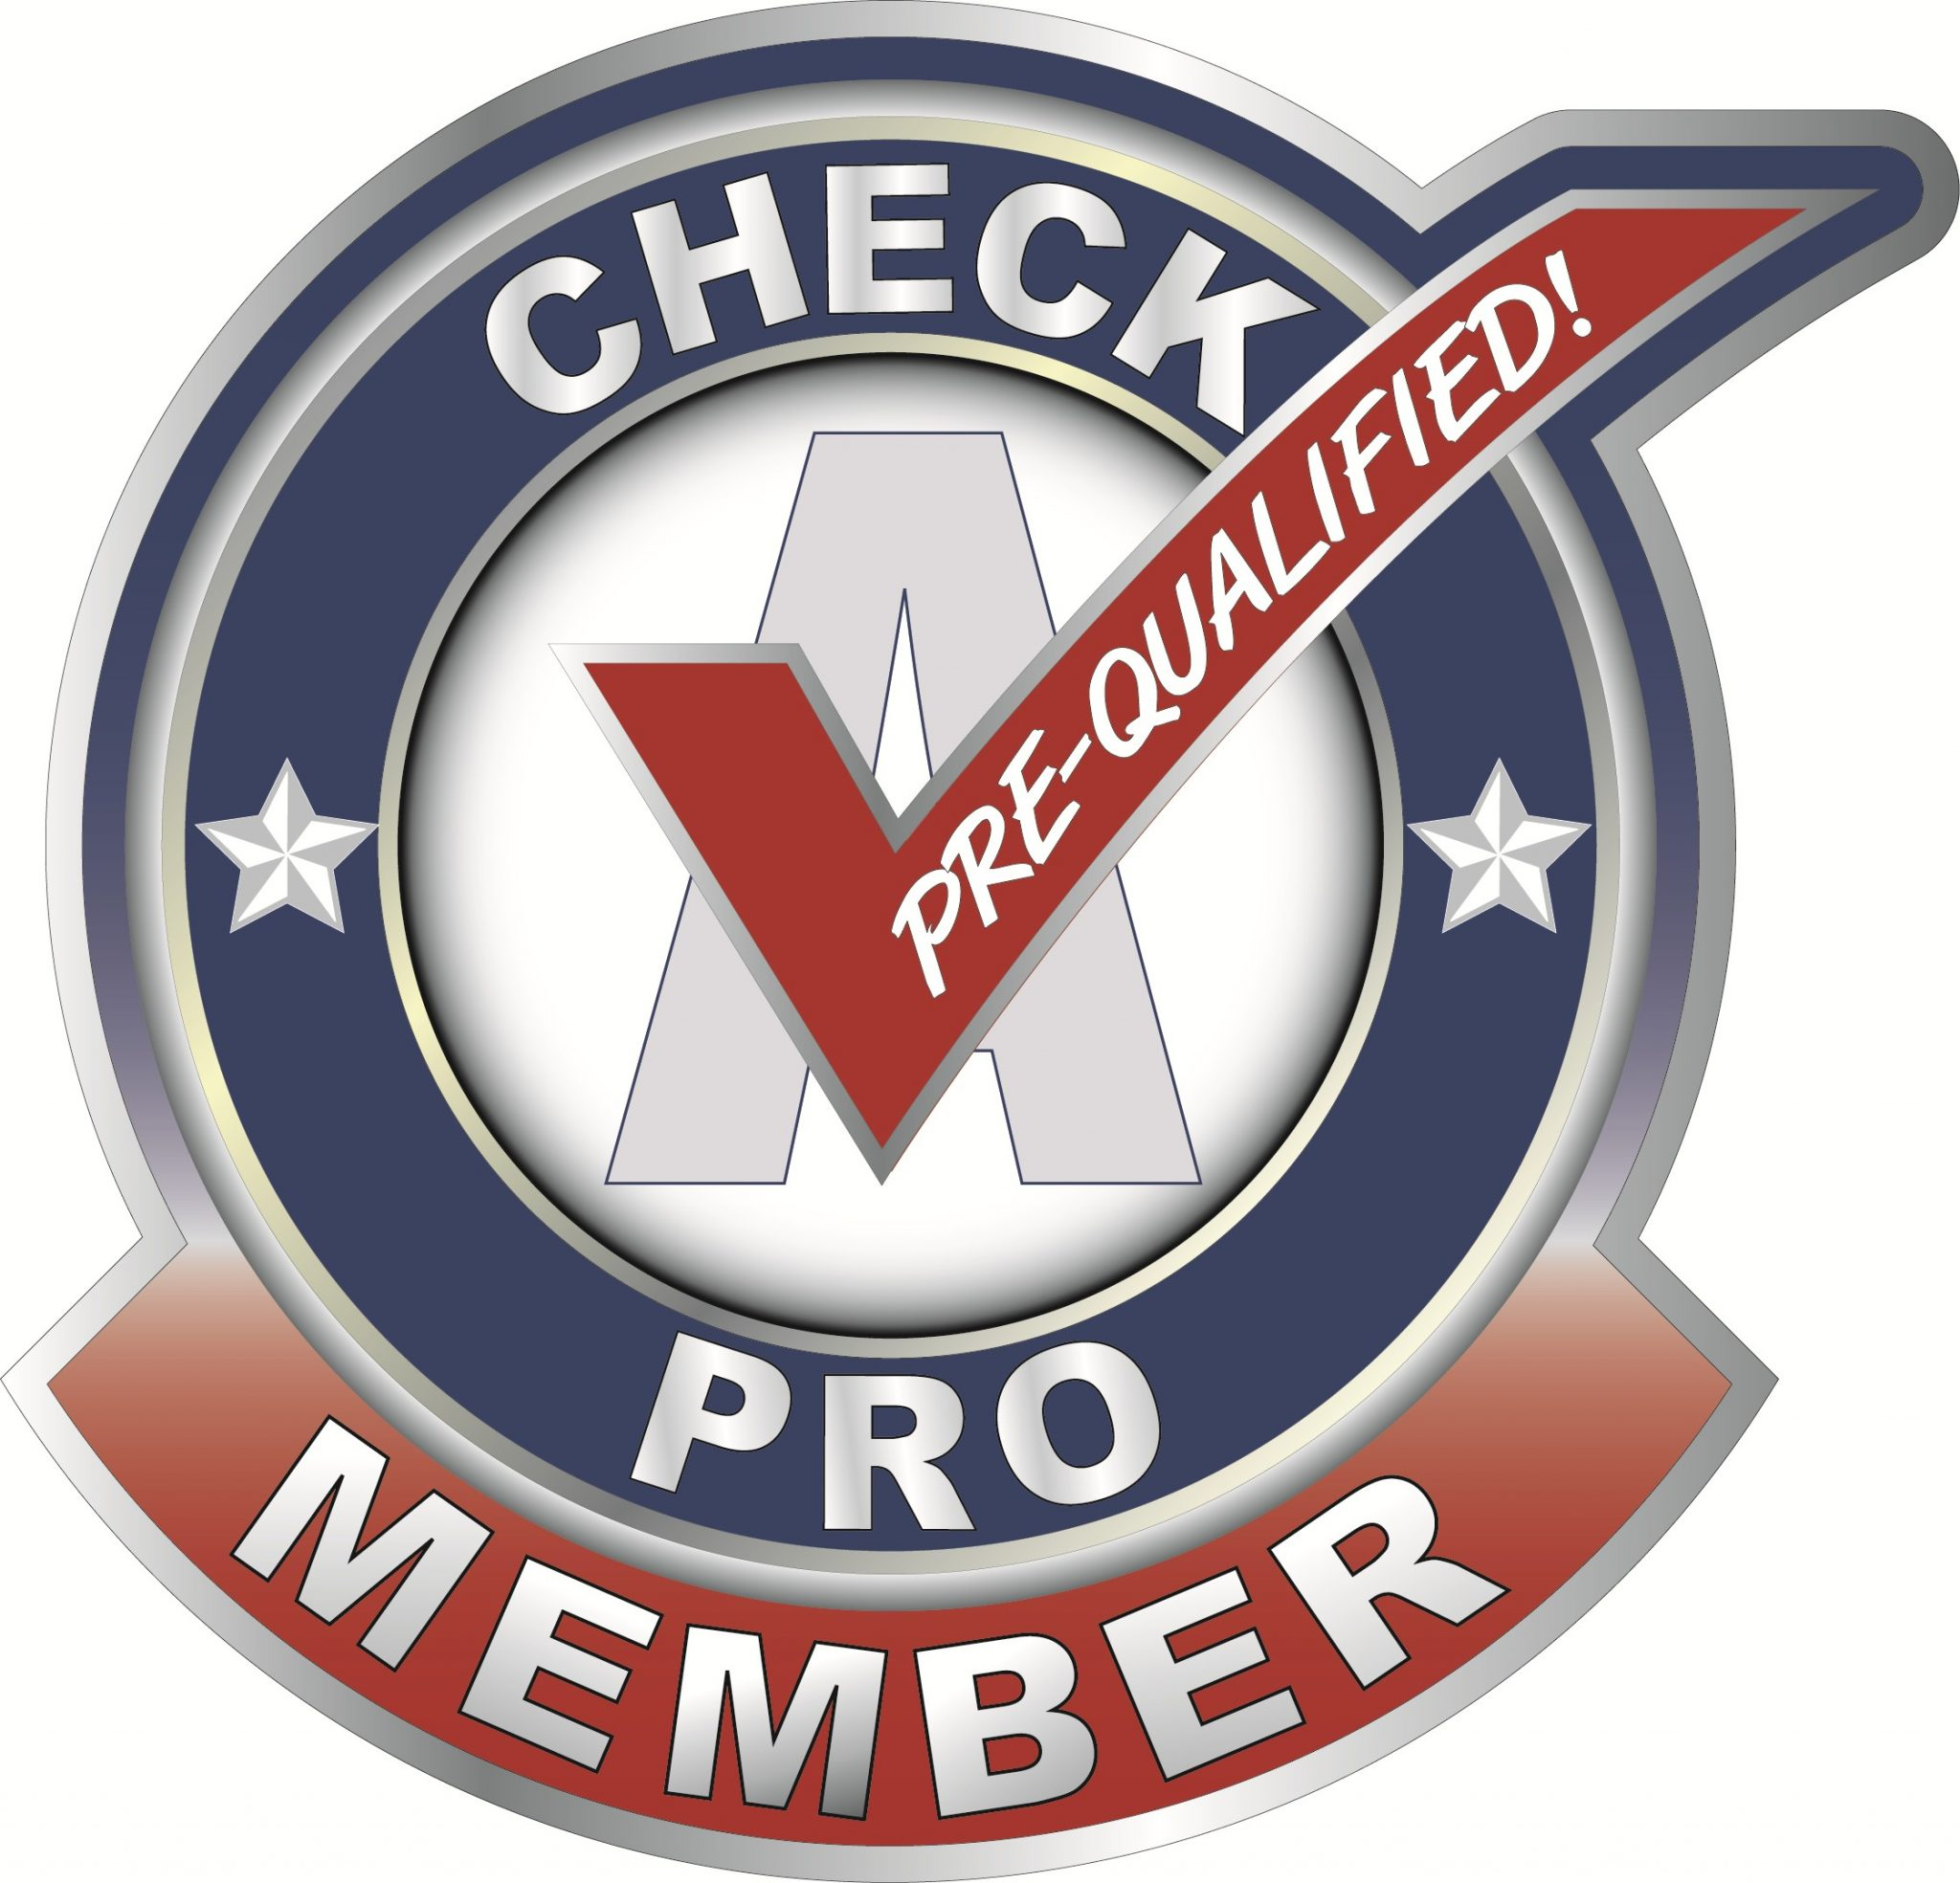 Check pro member pre-qualified